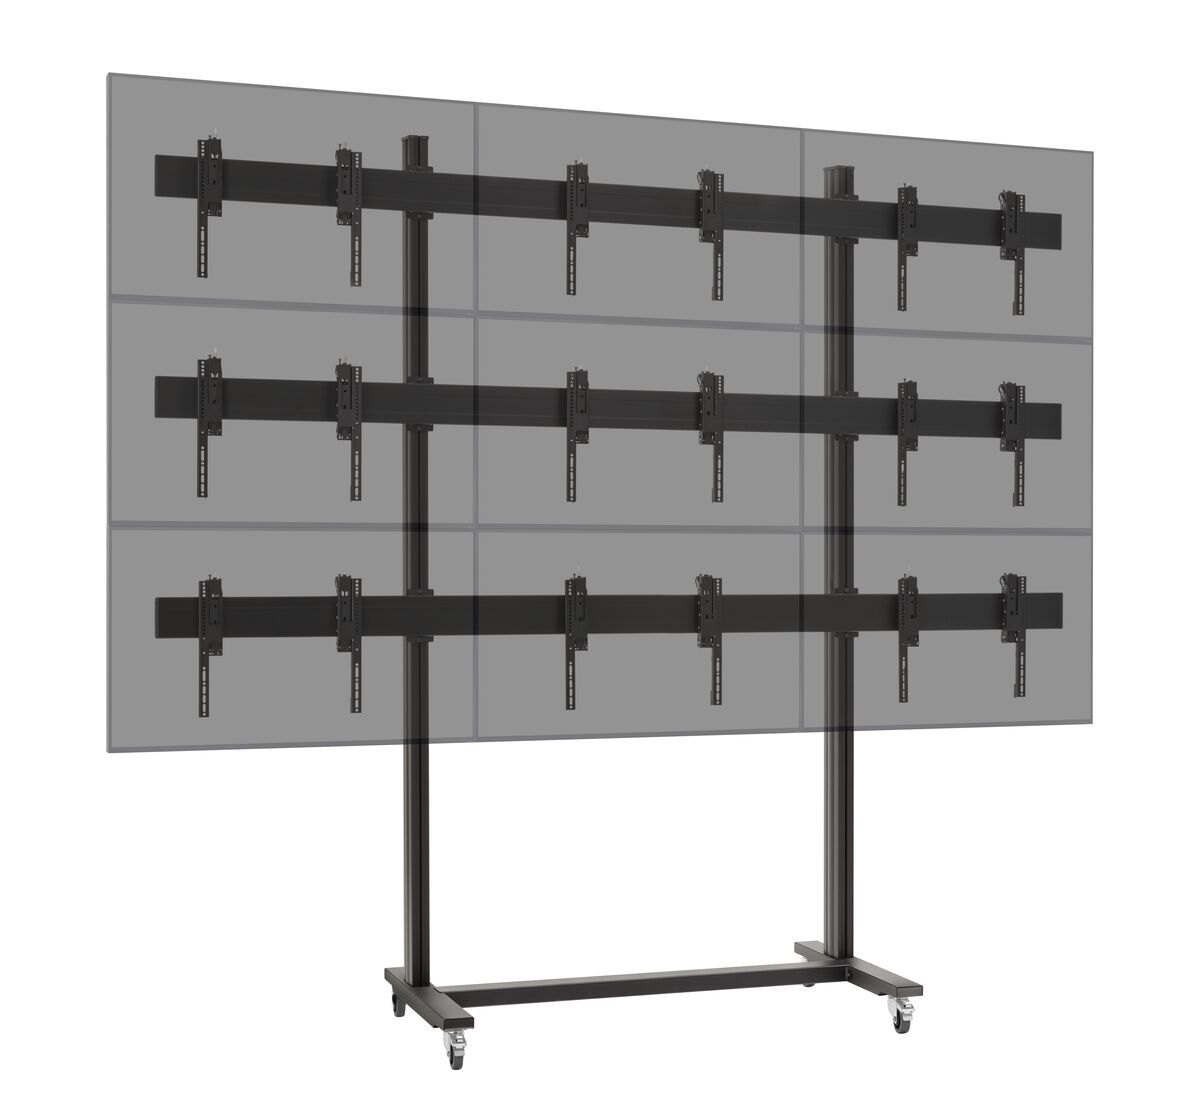 Vogel's PFT 8920 Trolley pour mur video base - Application